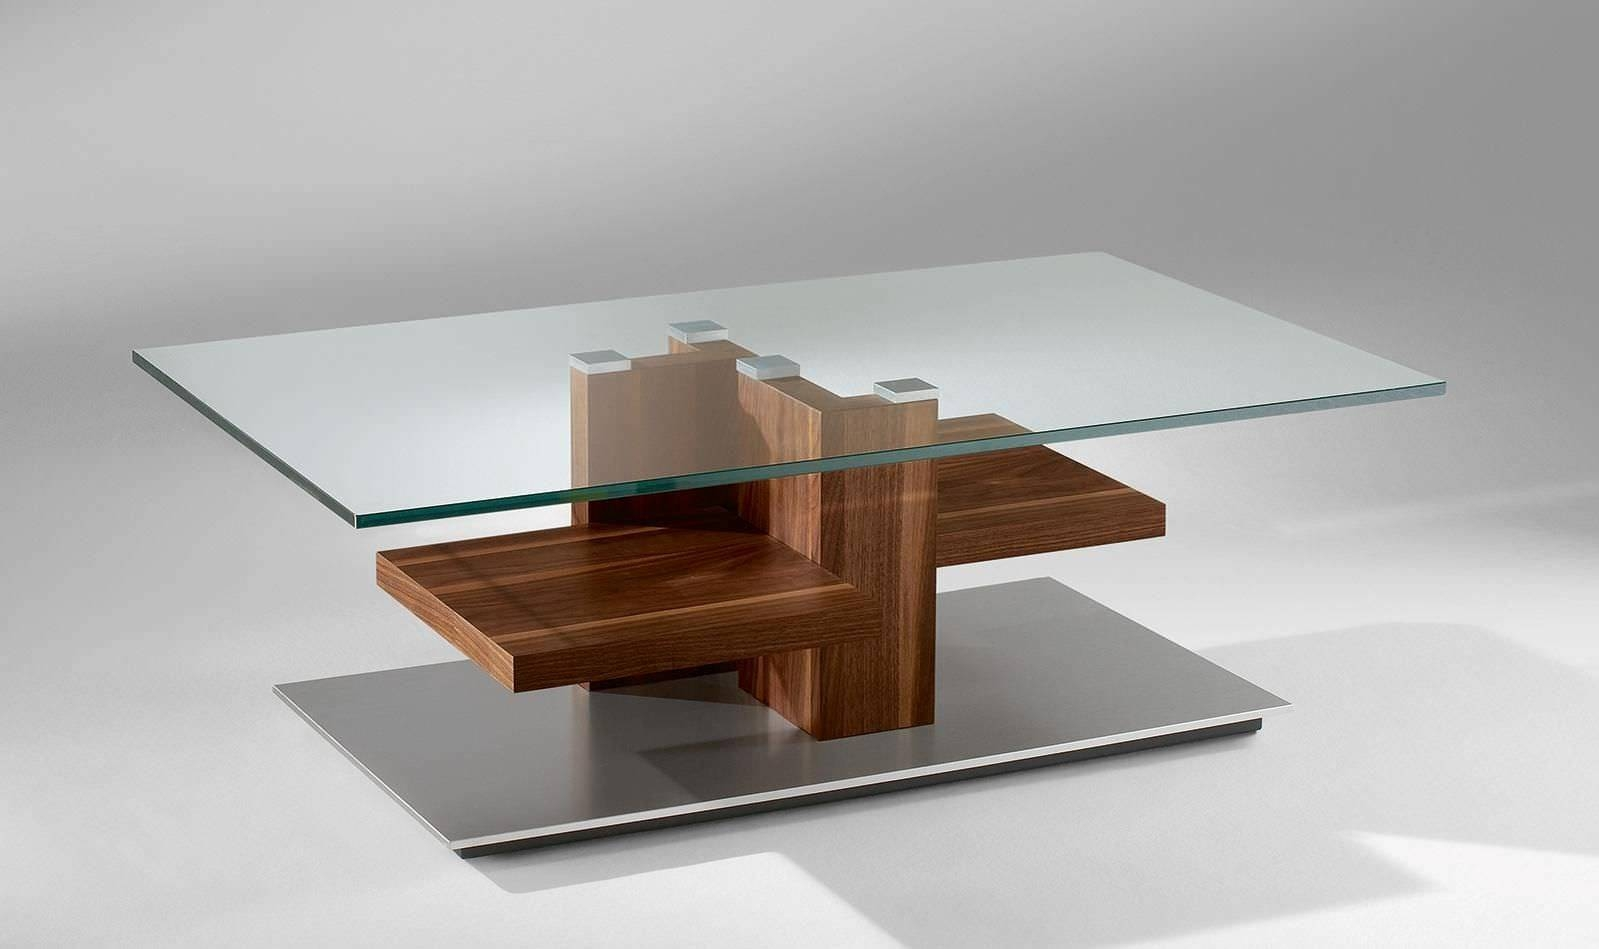 Furniture. Glass And Wood Coffee Tables Ideas: Brown Rectangle intended for Glass and Wood Coffee Tables (Image 9 of 15)